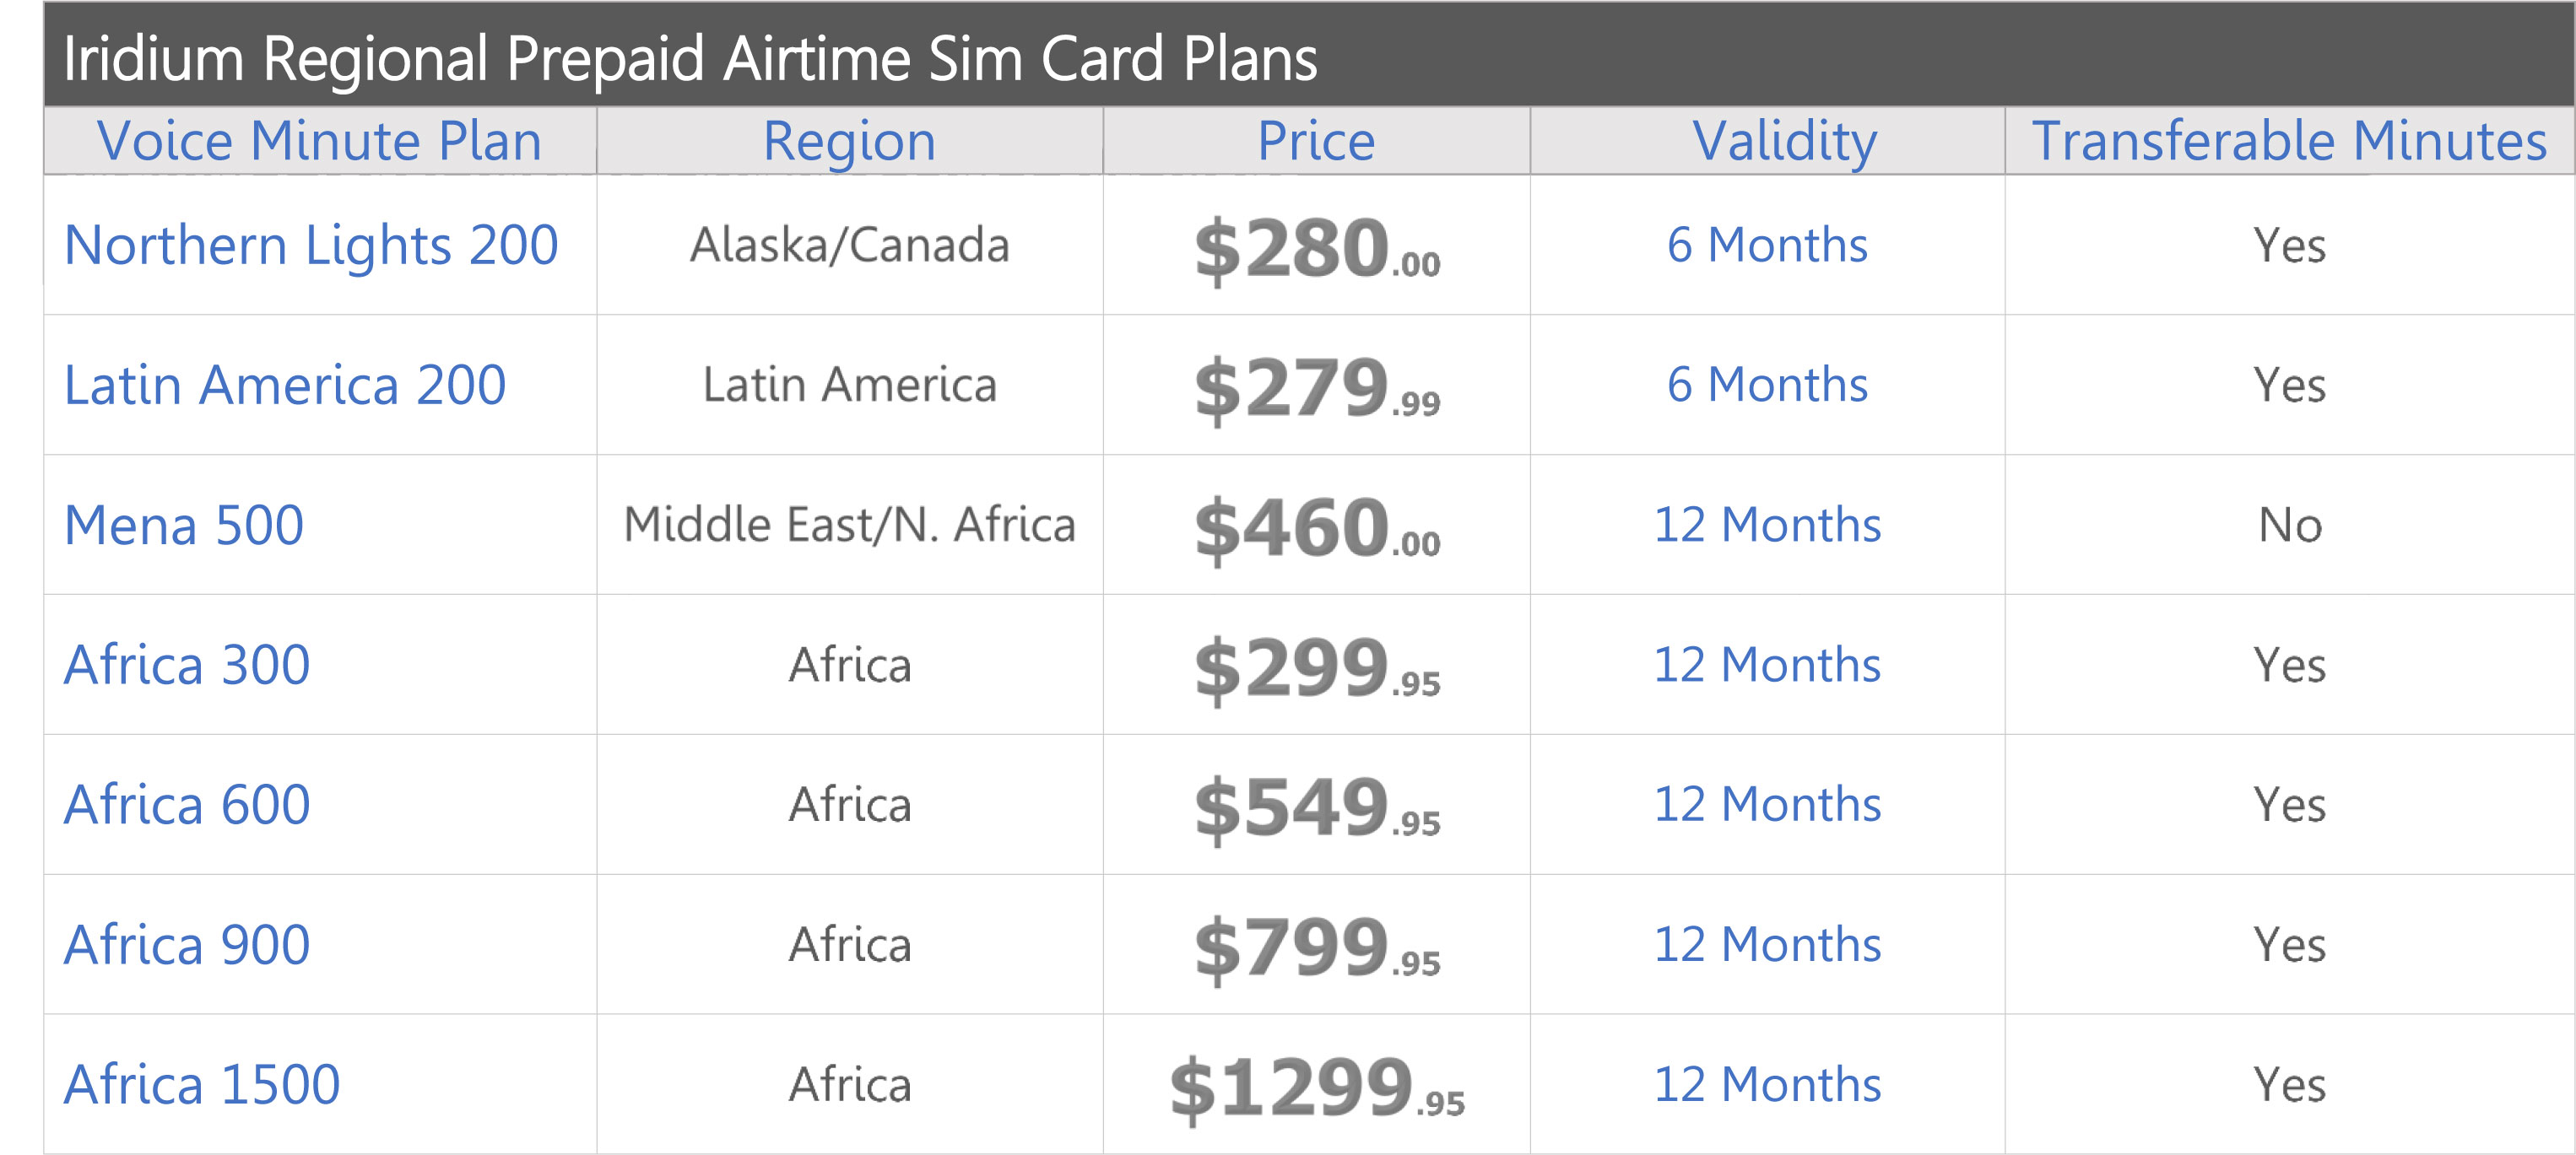 iridium-prepaid-regional-airtime-service-plans-price-chart-2018-northernaxcess.jpg